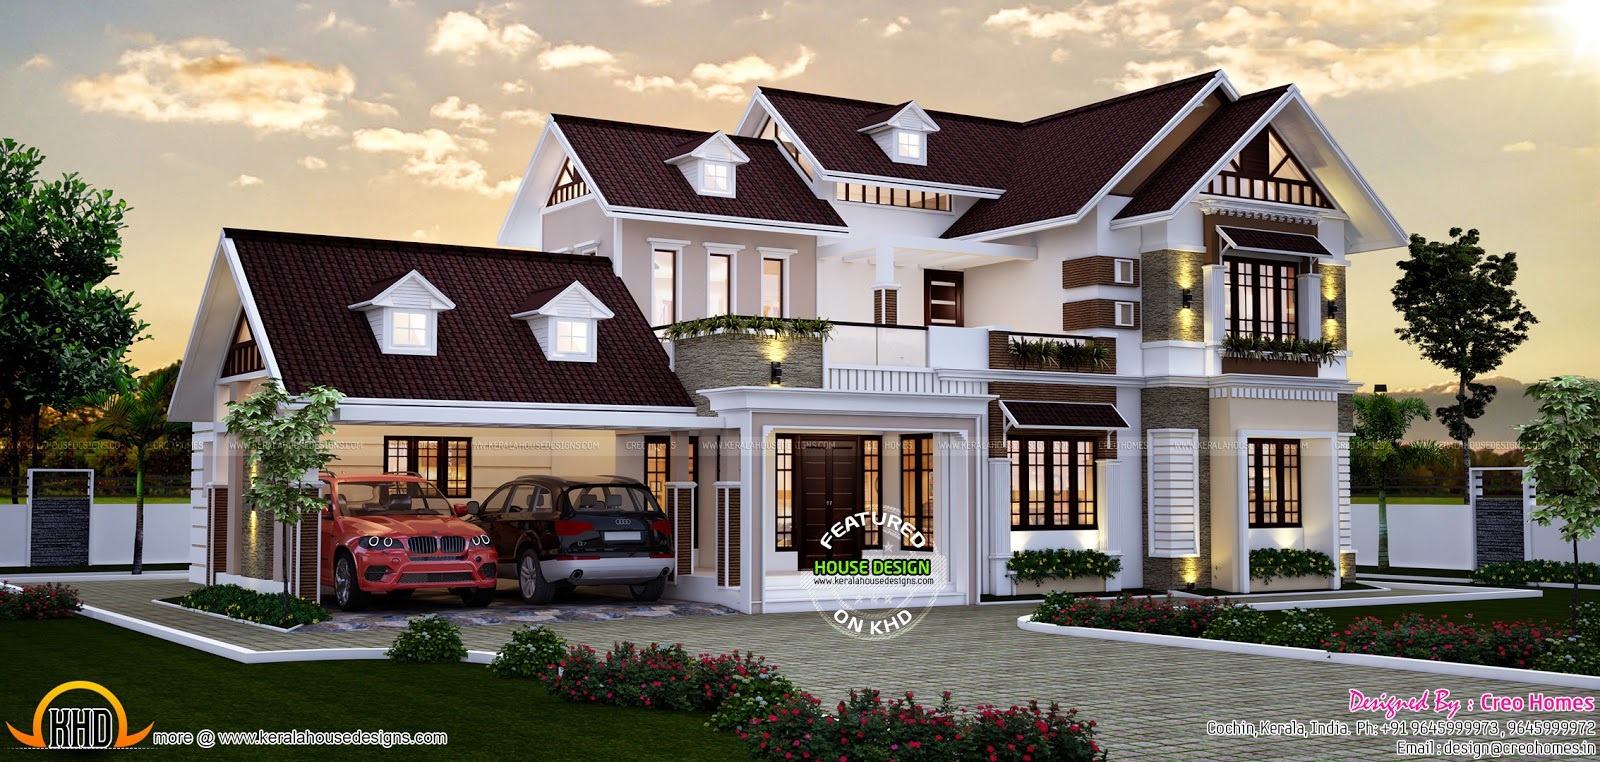 Elegant house designs home design and style for House and home decorating